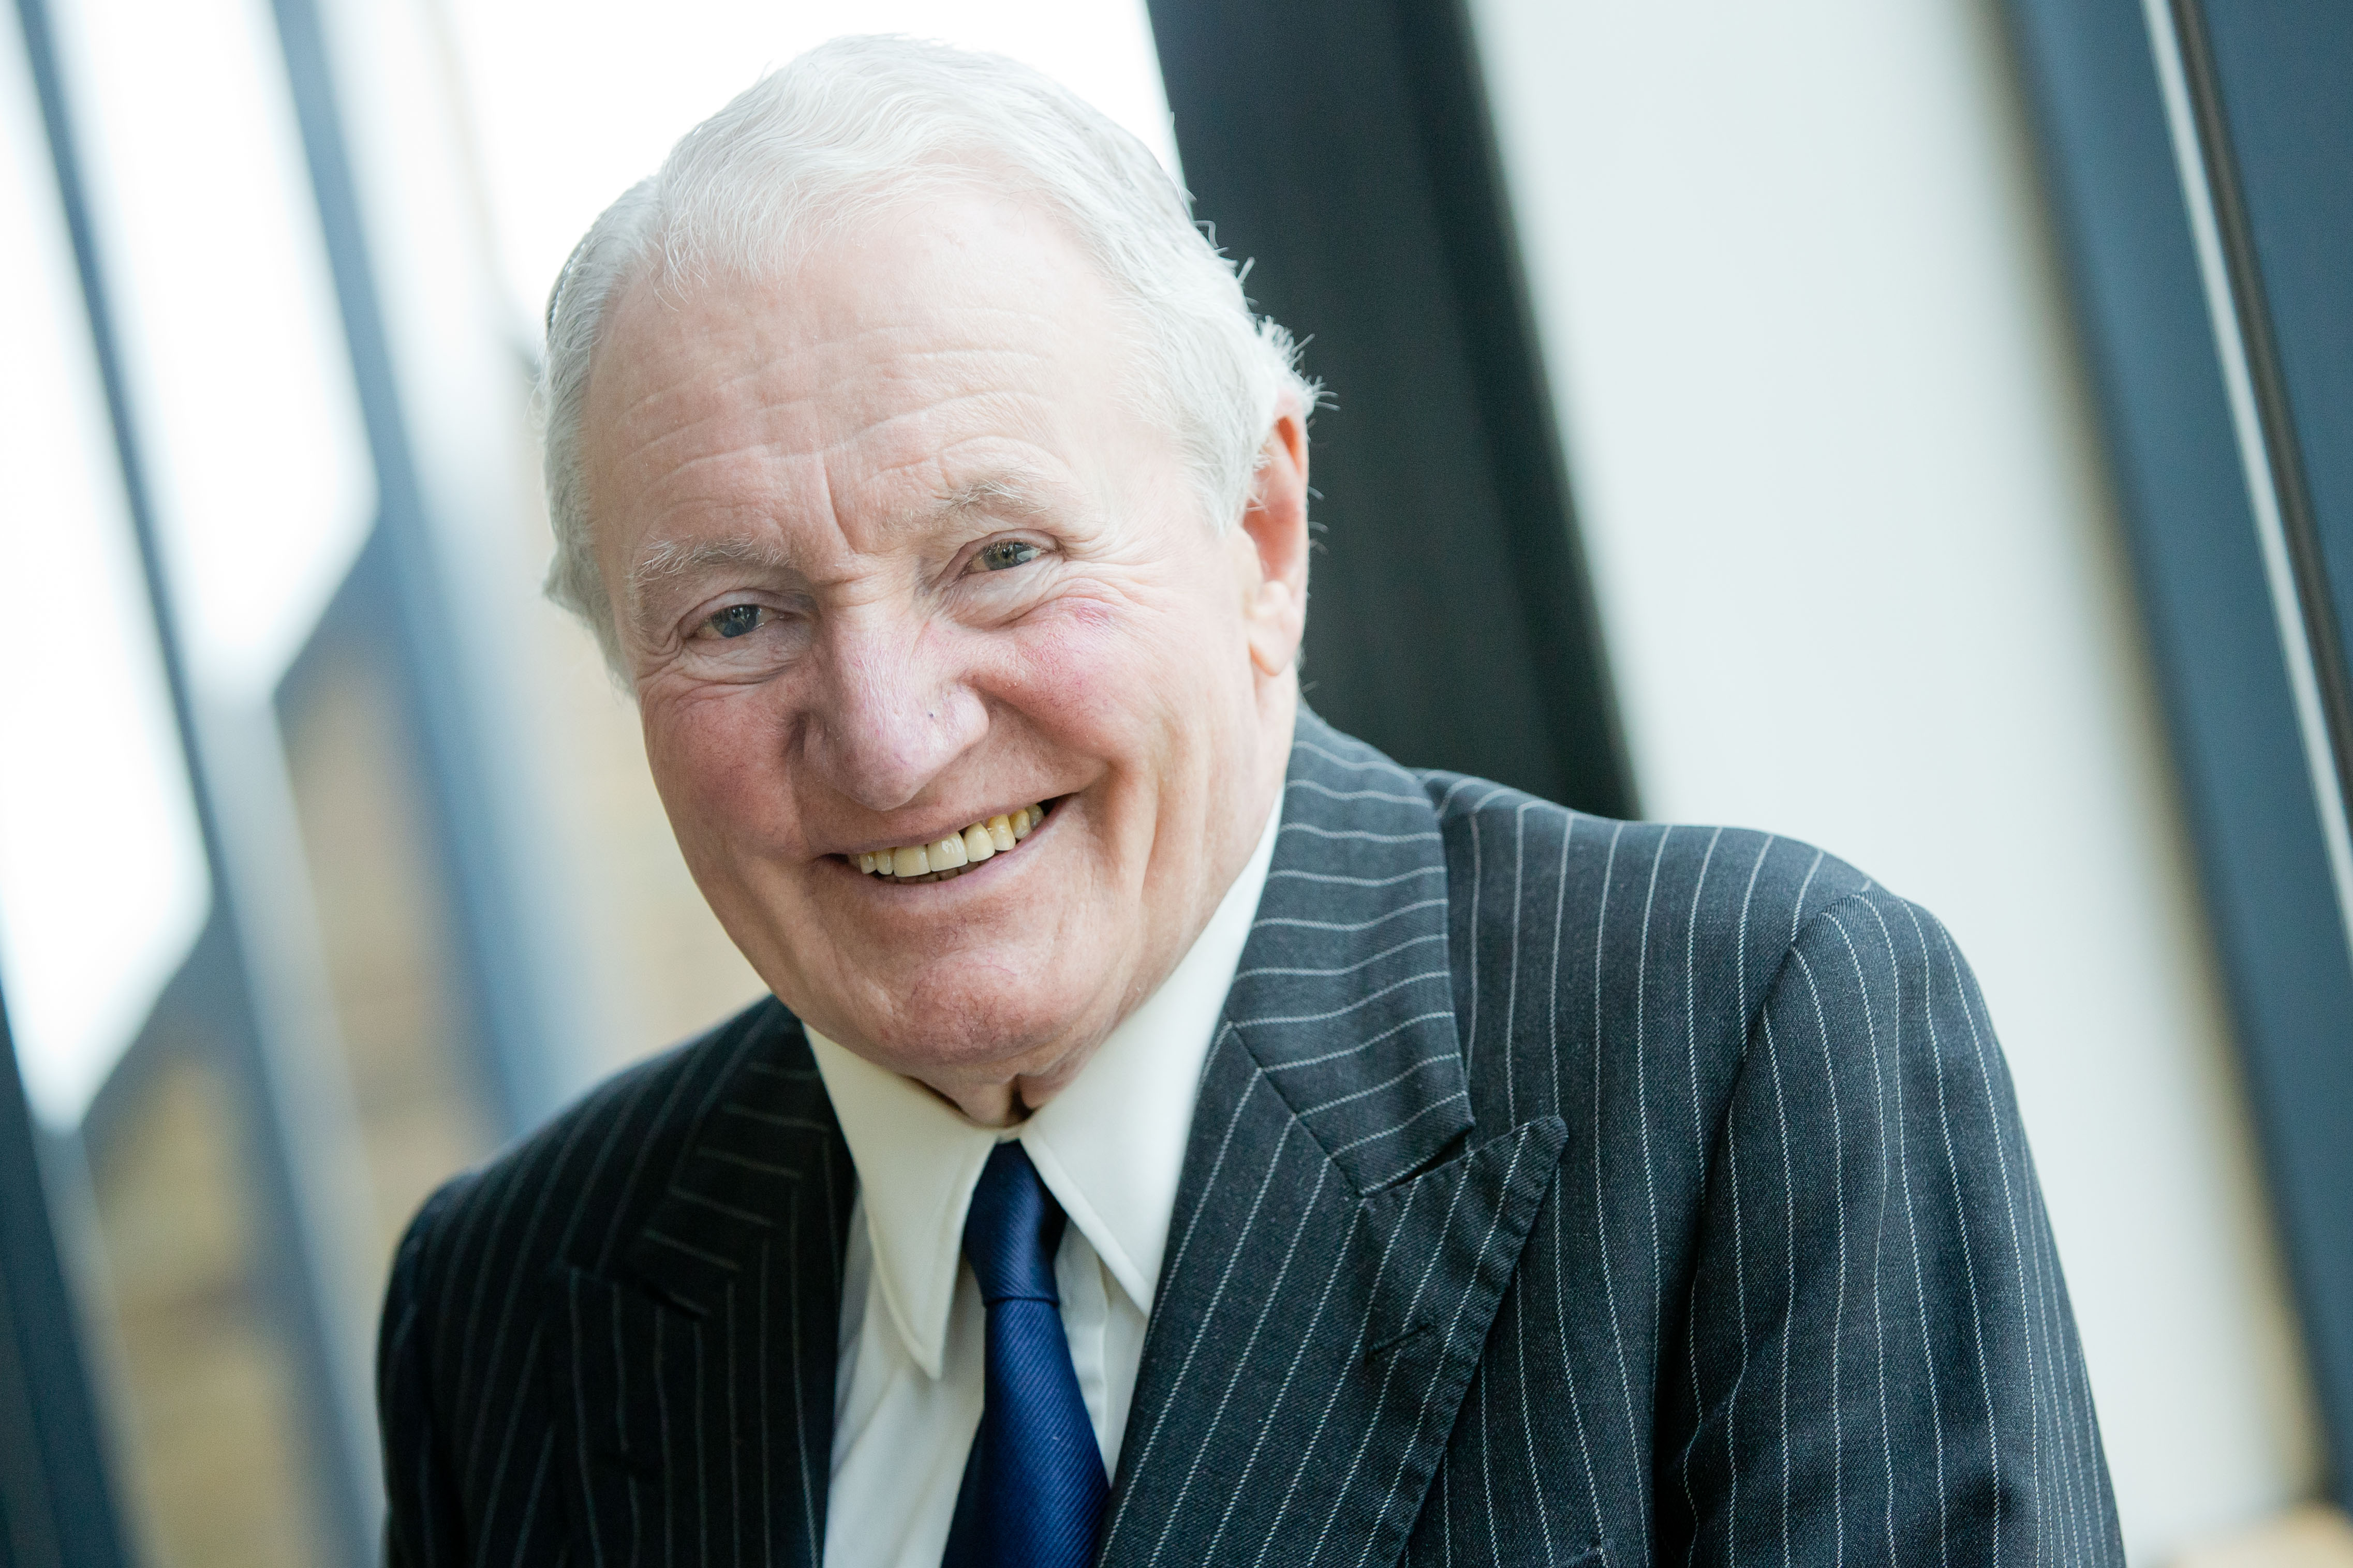 Paddy Hopkirk the Ambassador to Champion Mature Driver Safety for IAM RoadSmart